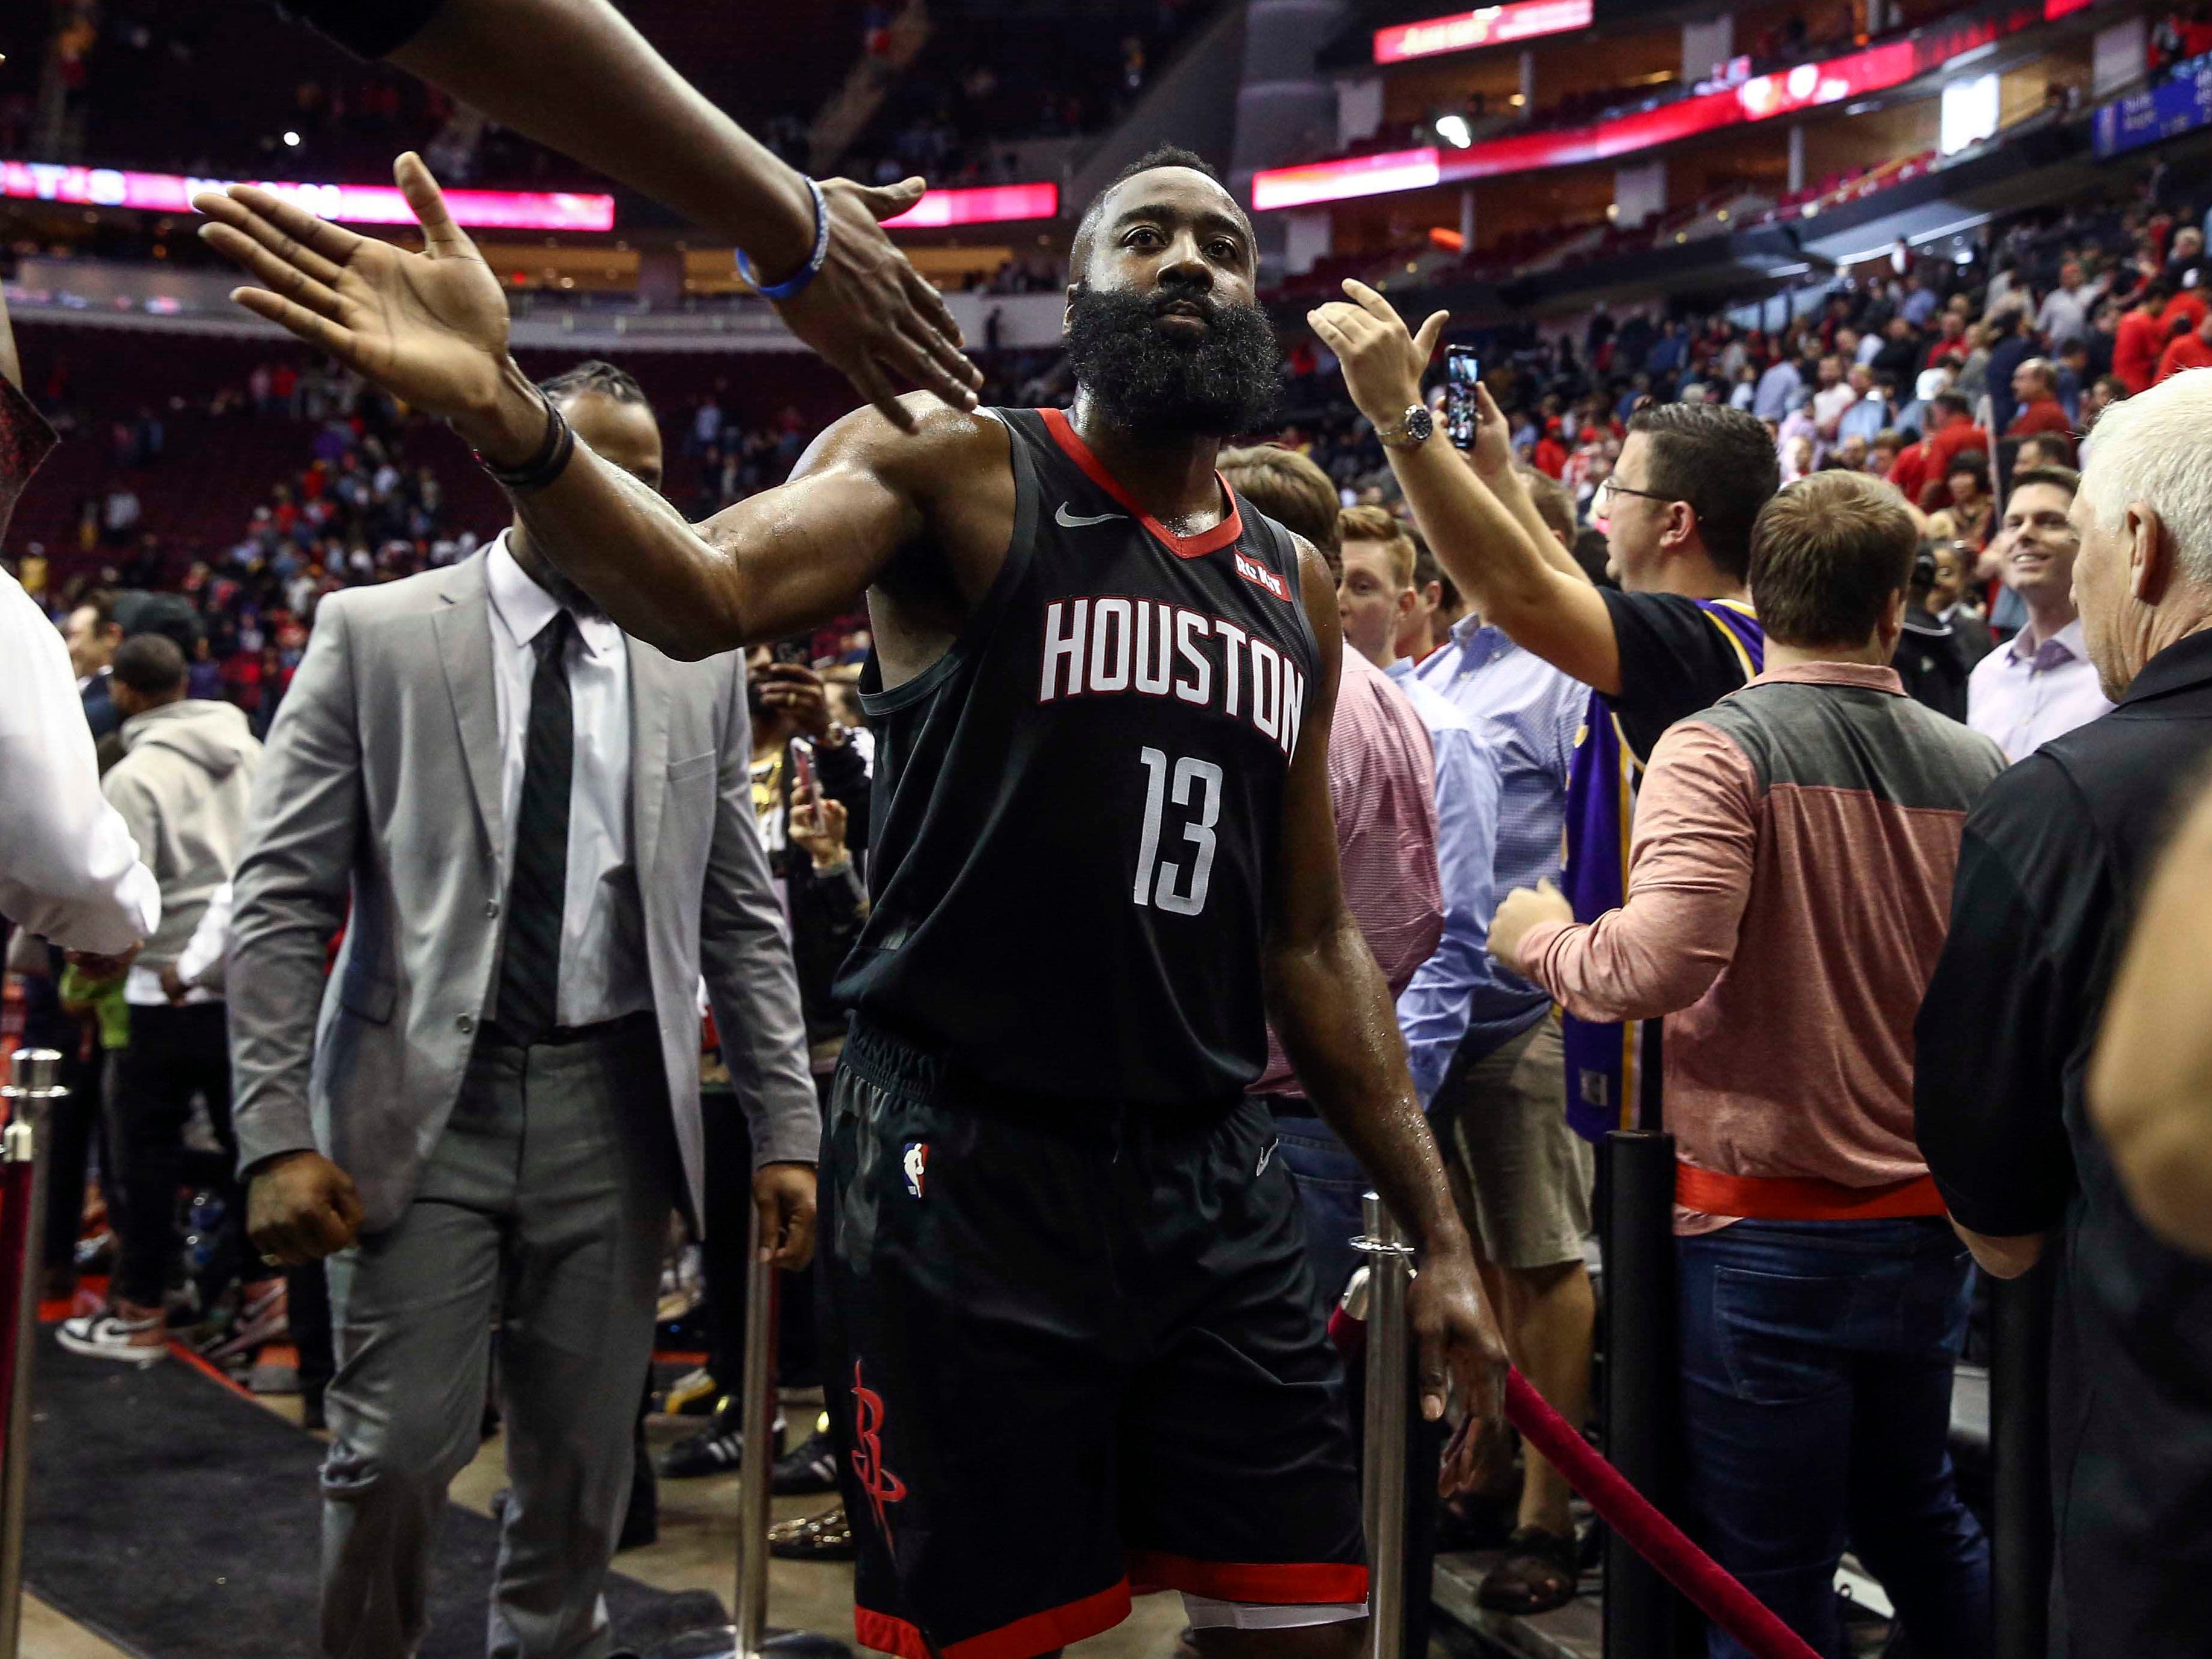 Dec. 13: Rockets star James Harden feels the love from the home crowd after scorching the Lakers for 50 points and a triple-double in a much-needed win.